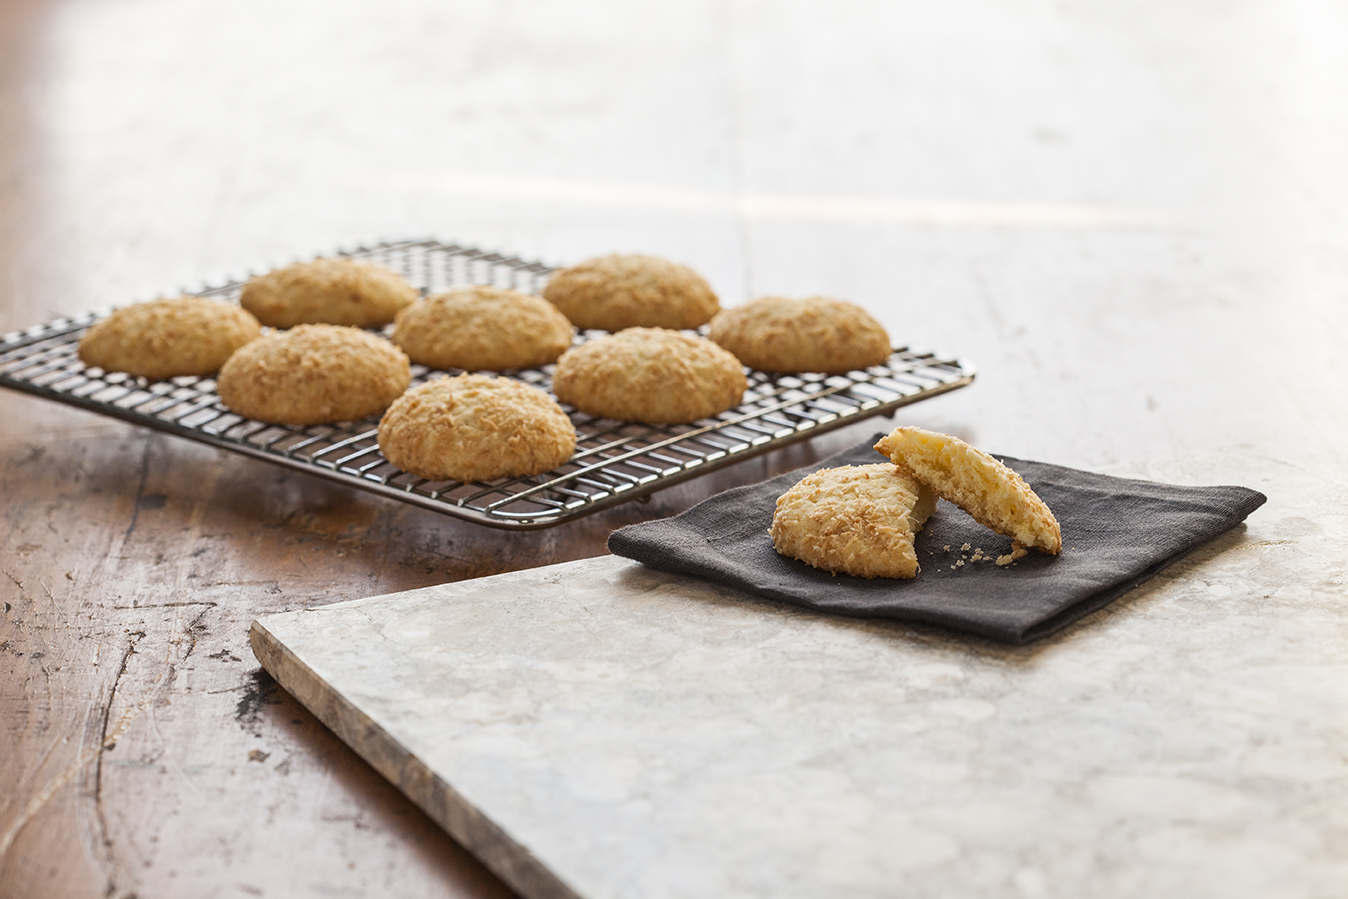 5J78638_Chewy LemonGingerCoconutCookies-1057_r1